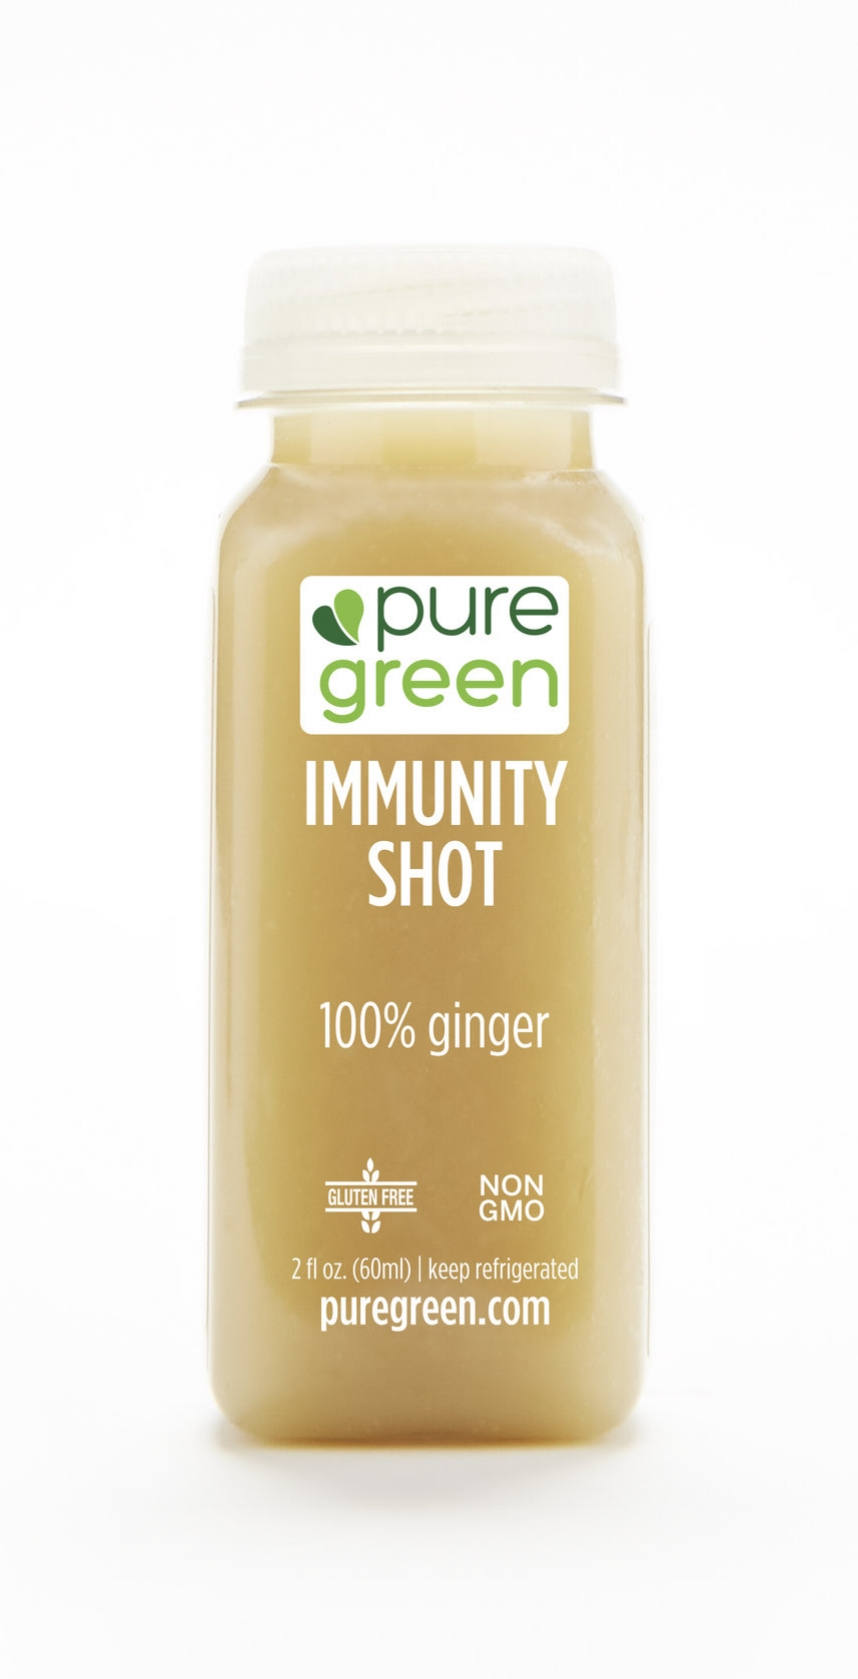 Immunity Shot Cold Pressed Juice